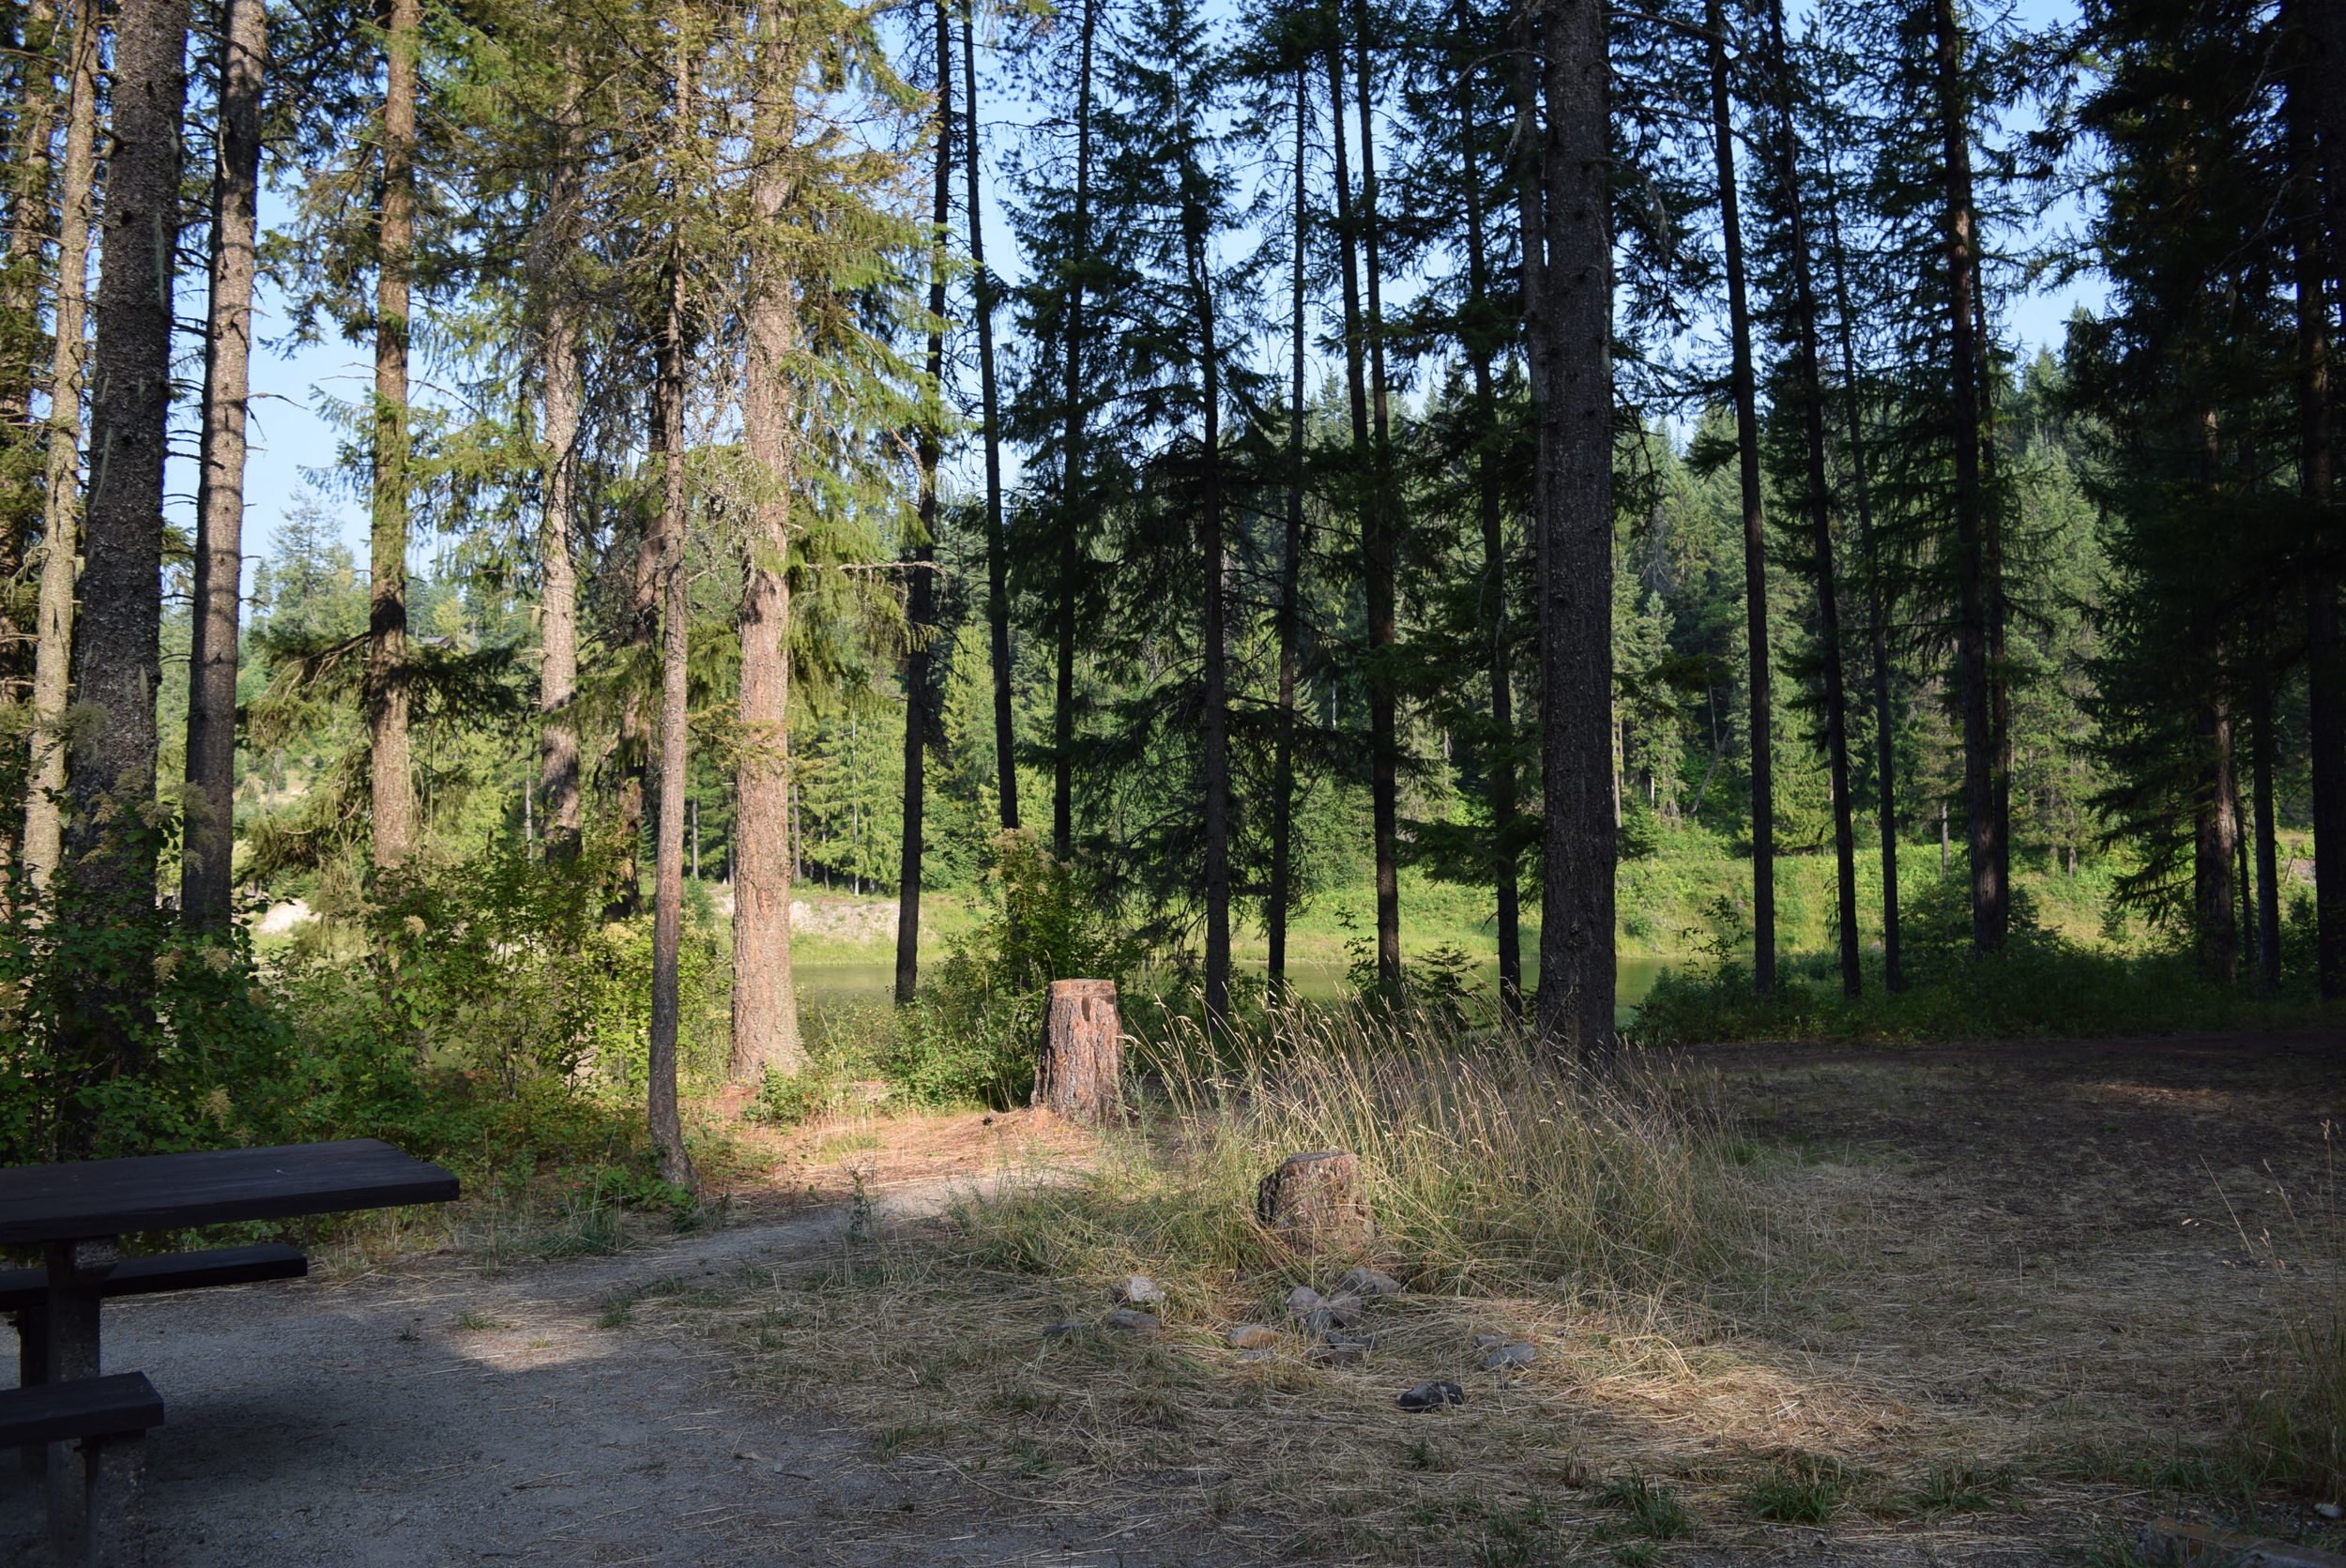 The campsite at Bull River National Park campground. One of my favorites.